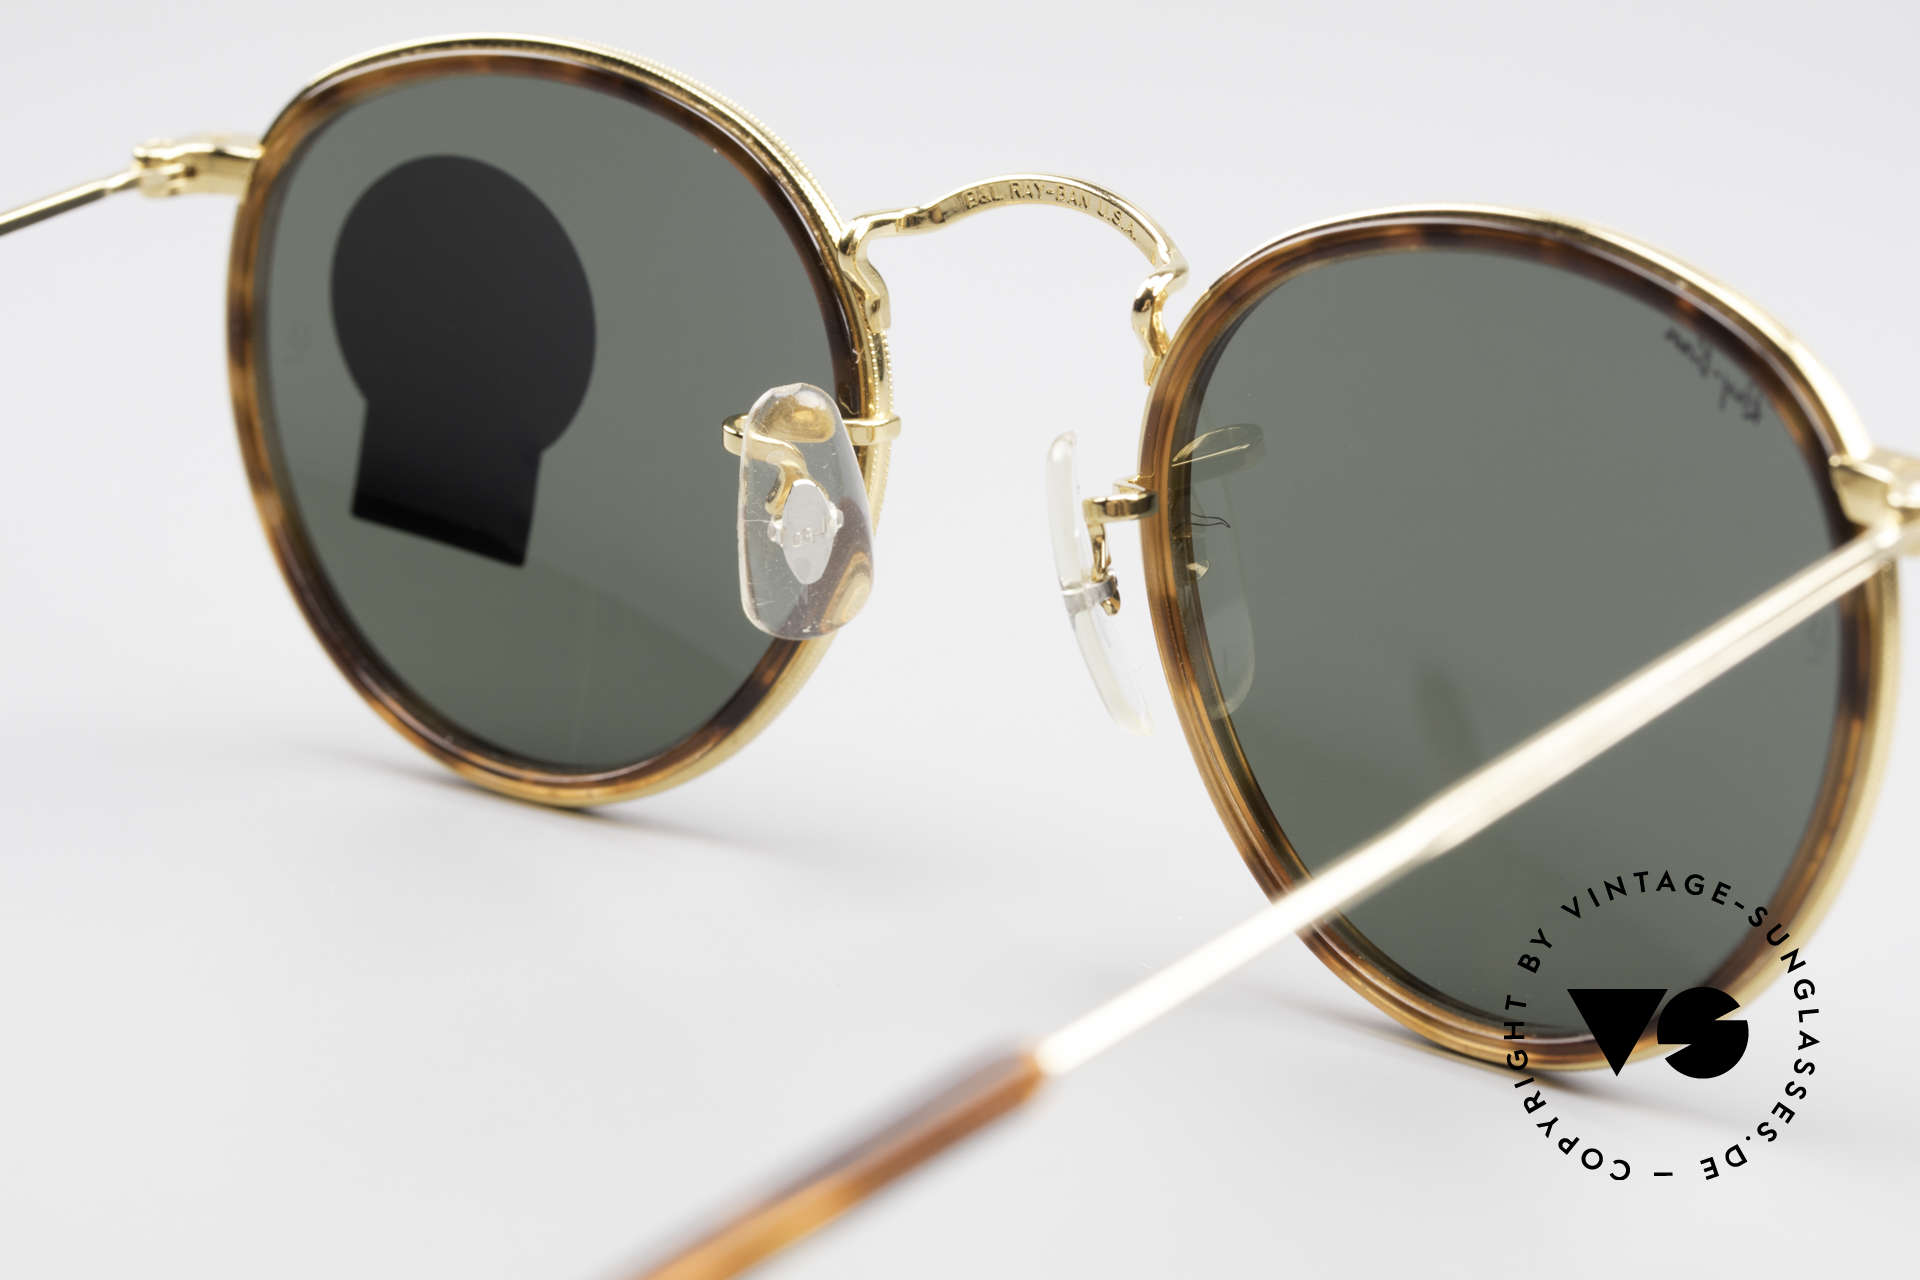 Ray Ban Round Metal 47 Small Round Shades Havana, Size: small, Made for Men and Women